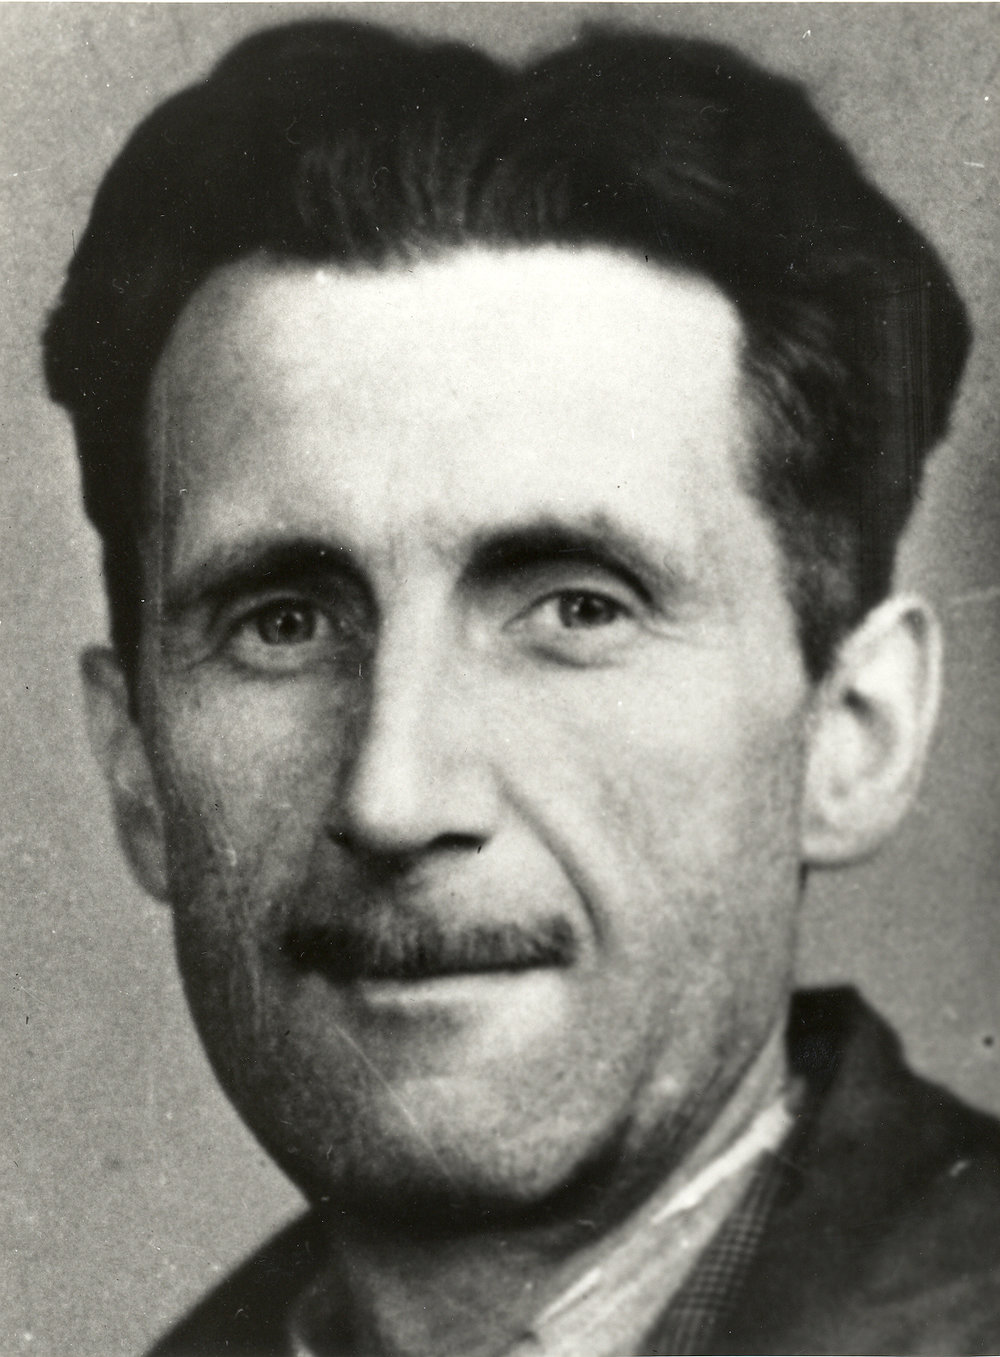 George Orwell - Eric Arthur Blair, better known by his pen name George Orwell, was an English novelist, essayist, journalist and critic, whose work is marked by lucid prose, awareness of social injustice, opposition to totalitarianism, and outspoken support of democratic socialism.is the author of two of my favorite books, 1984 and Animal Farm.